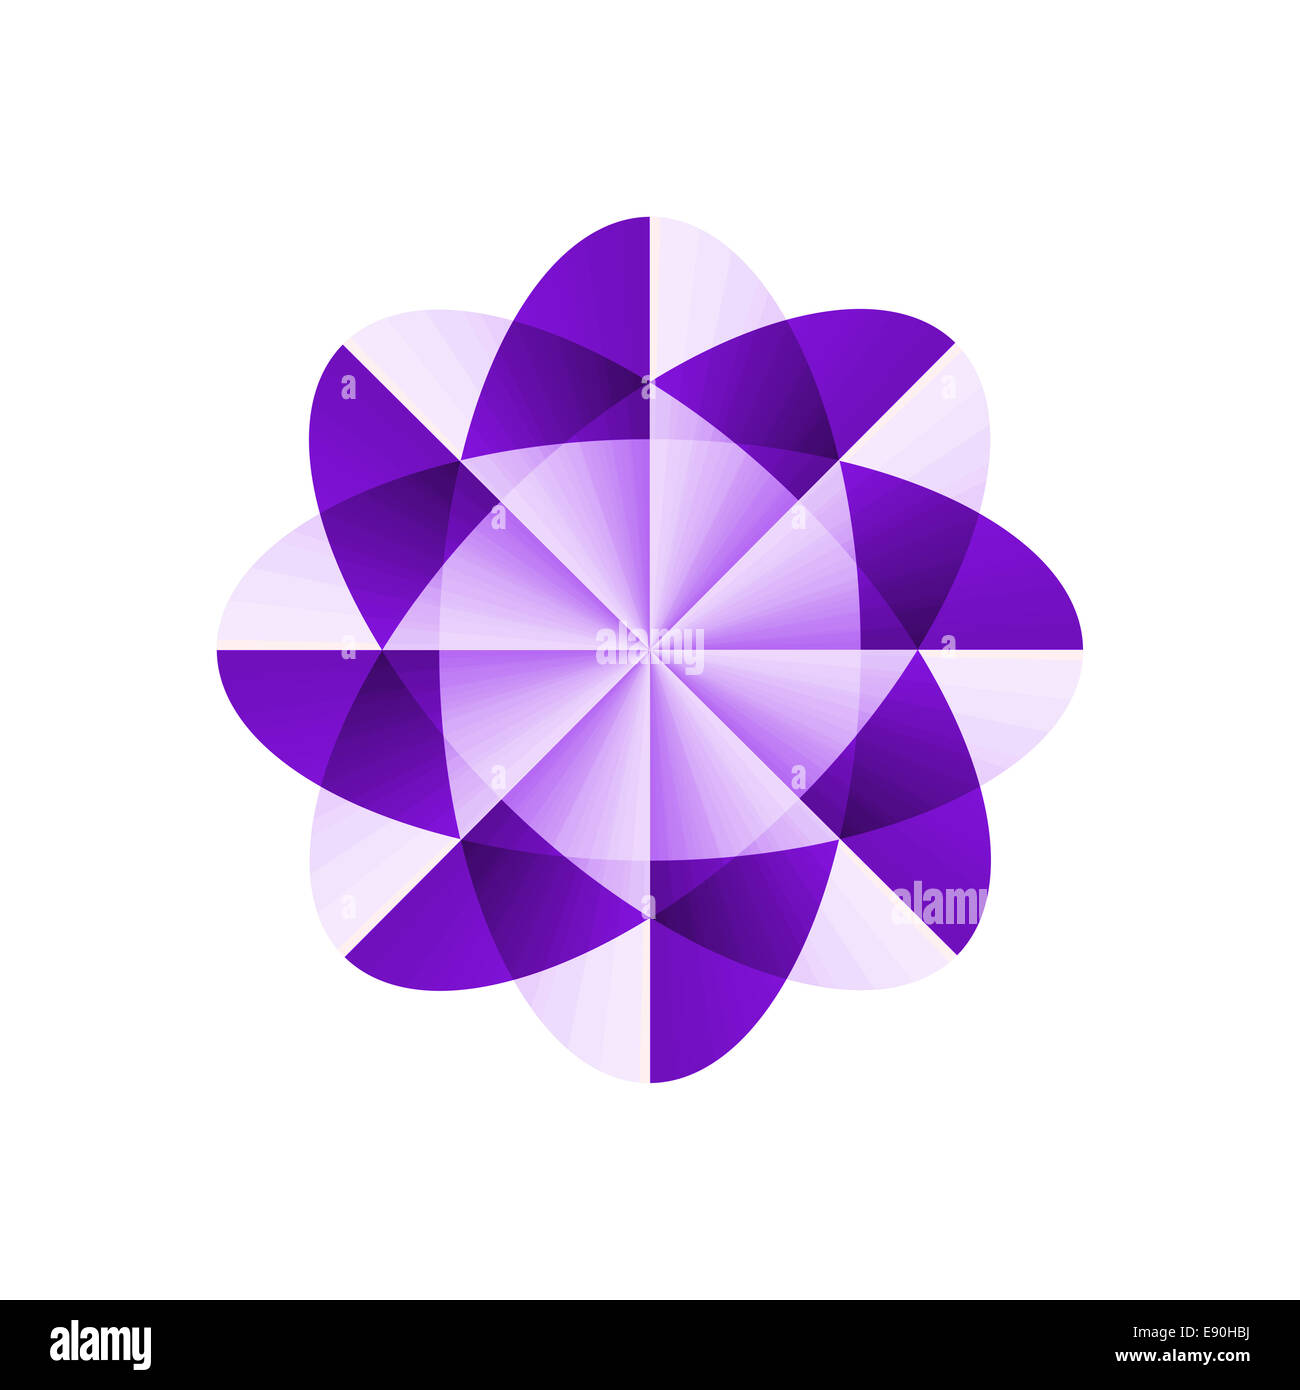 Abstract shape - Stock Image